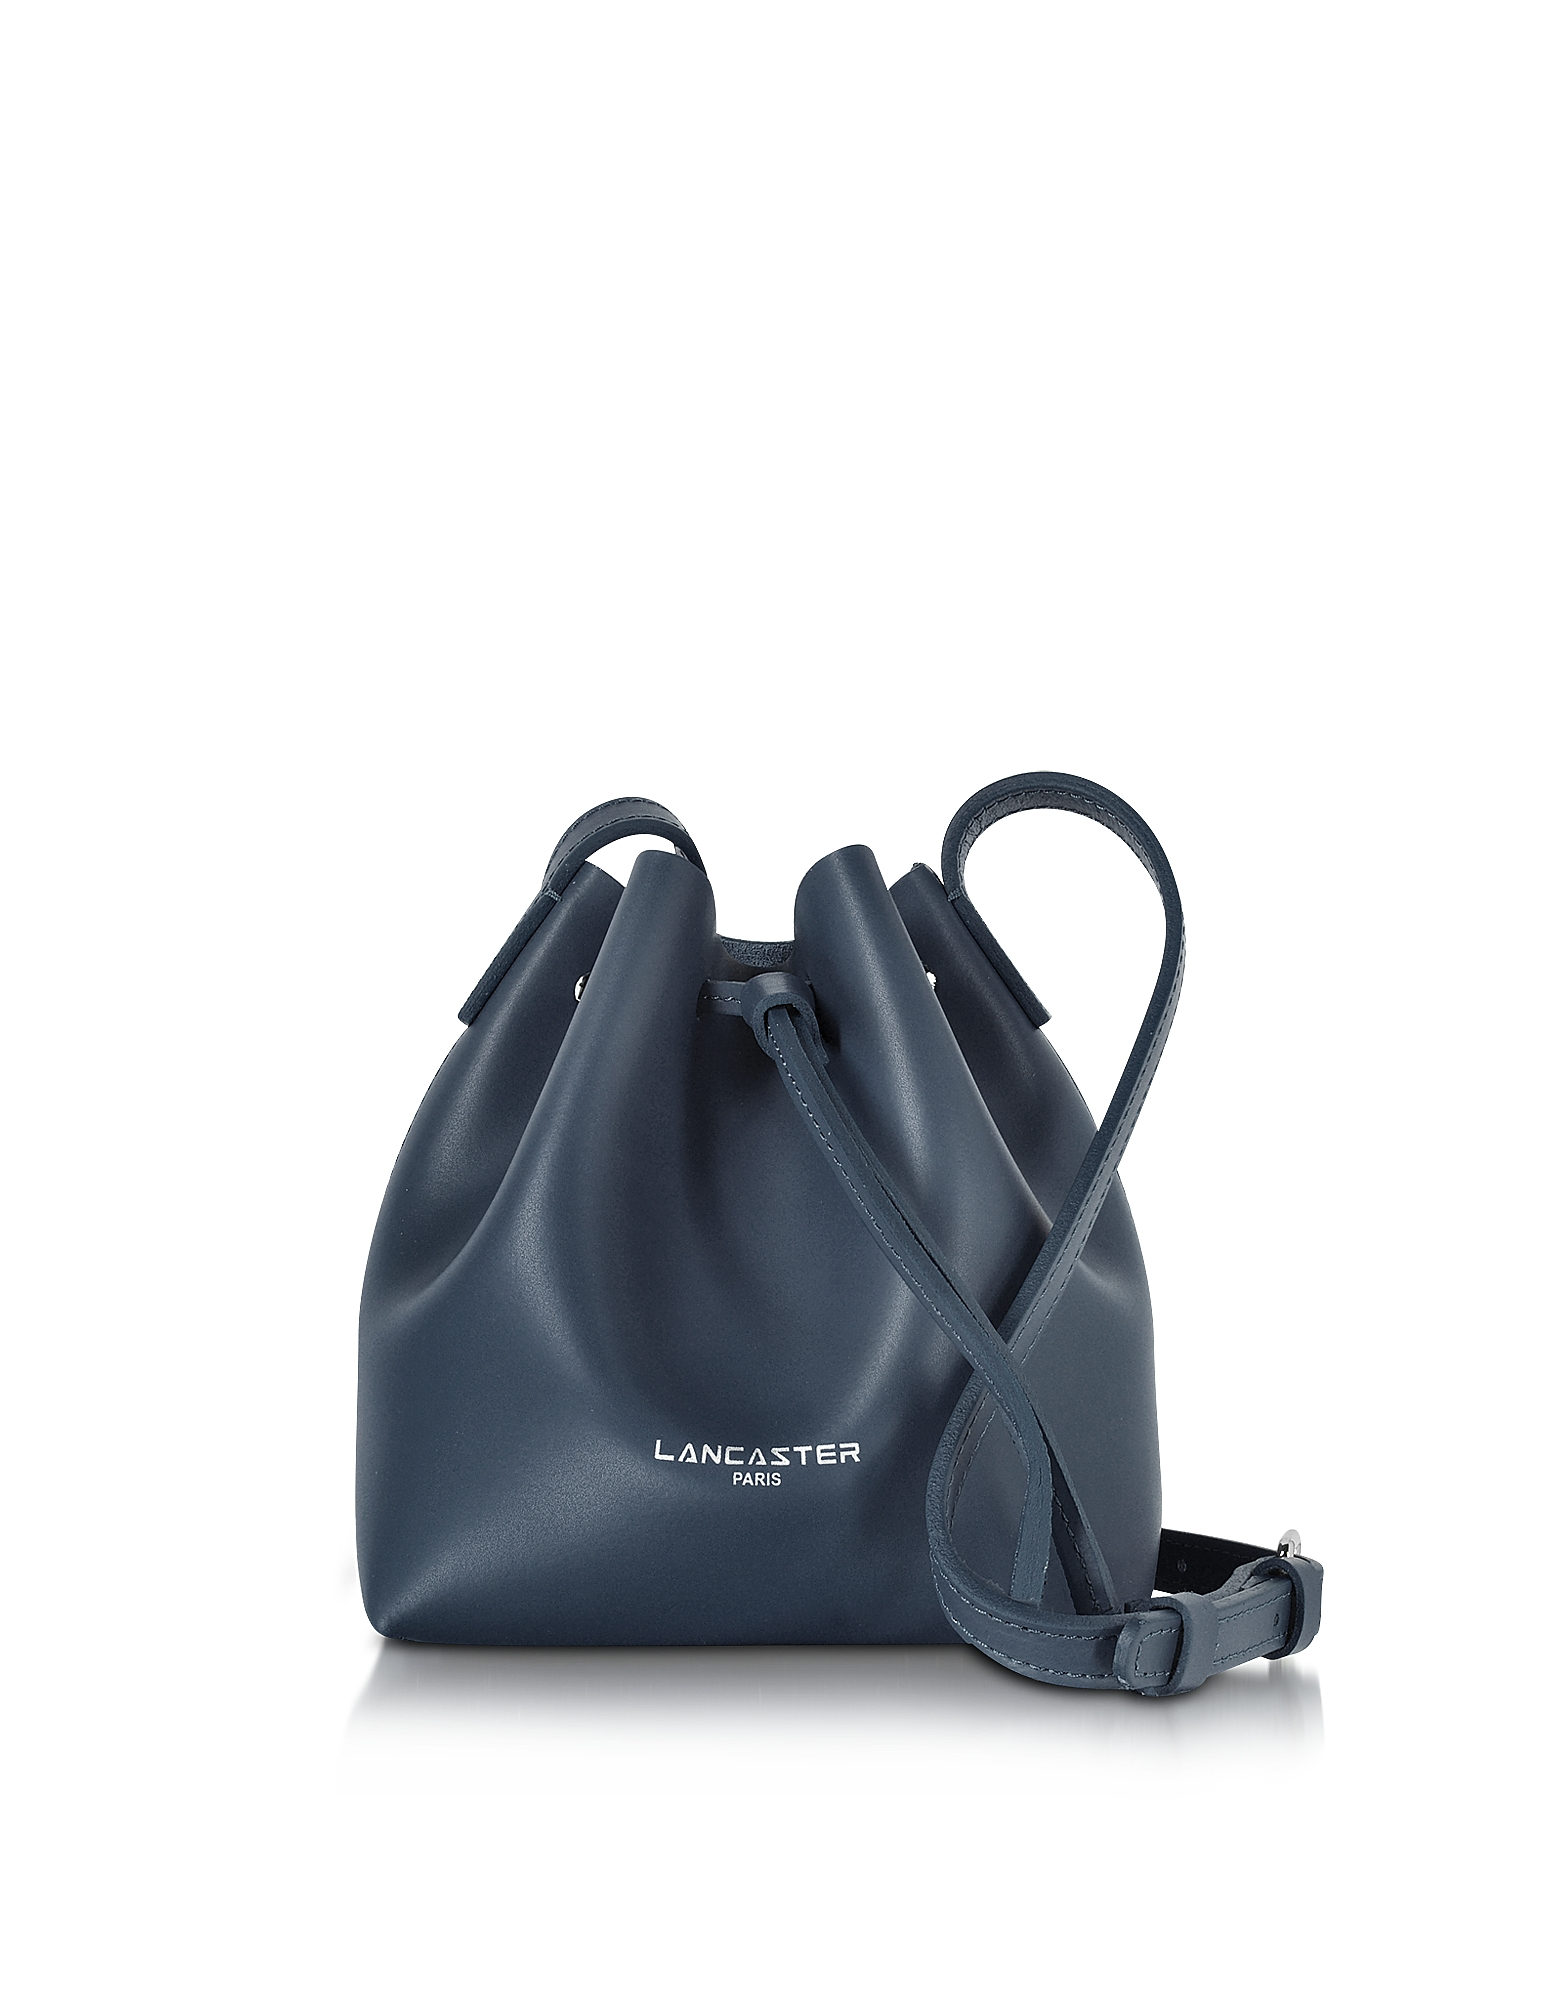 Lancaster Paris Designer Handbags, Pur Smooth Dark Blue Leather Mini Bucket Bag (Luggage & Bags) photo